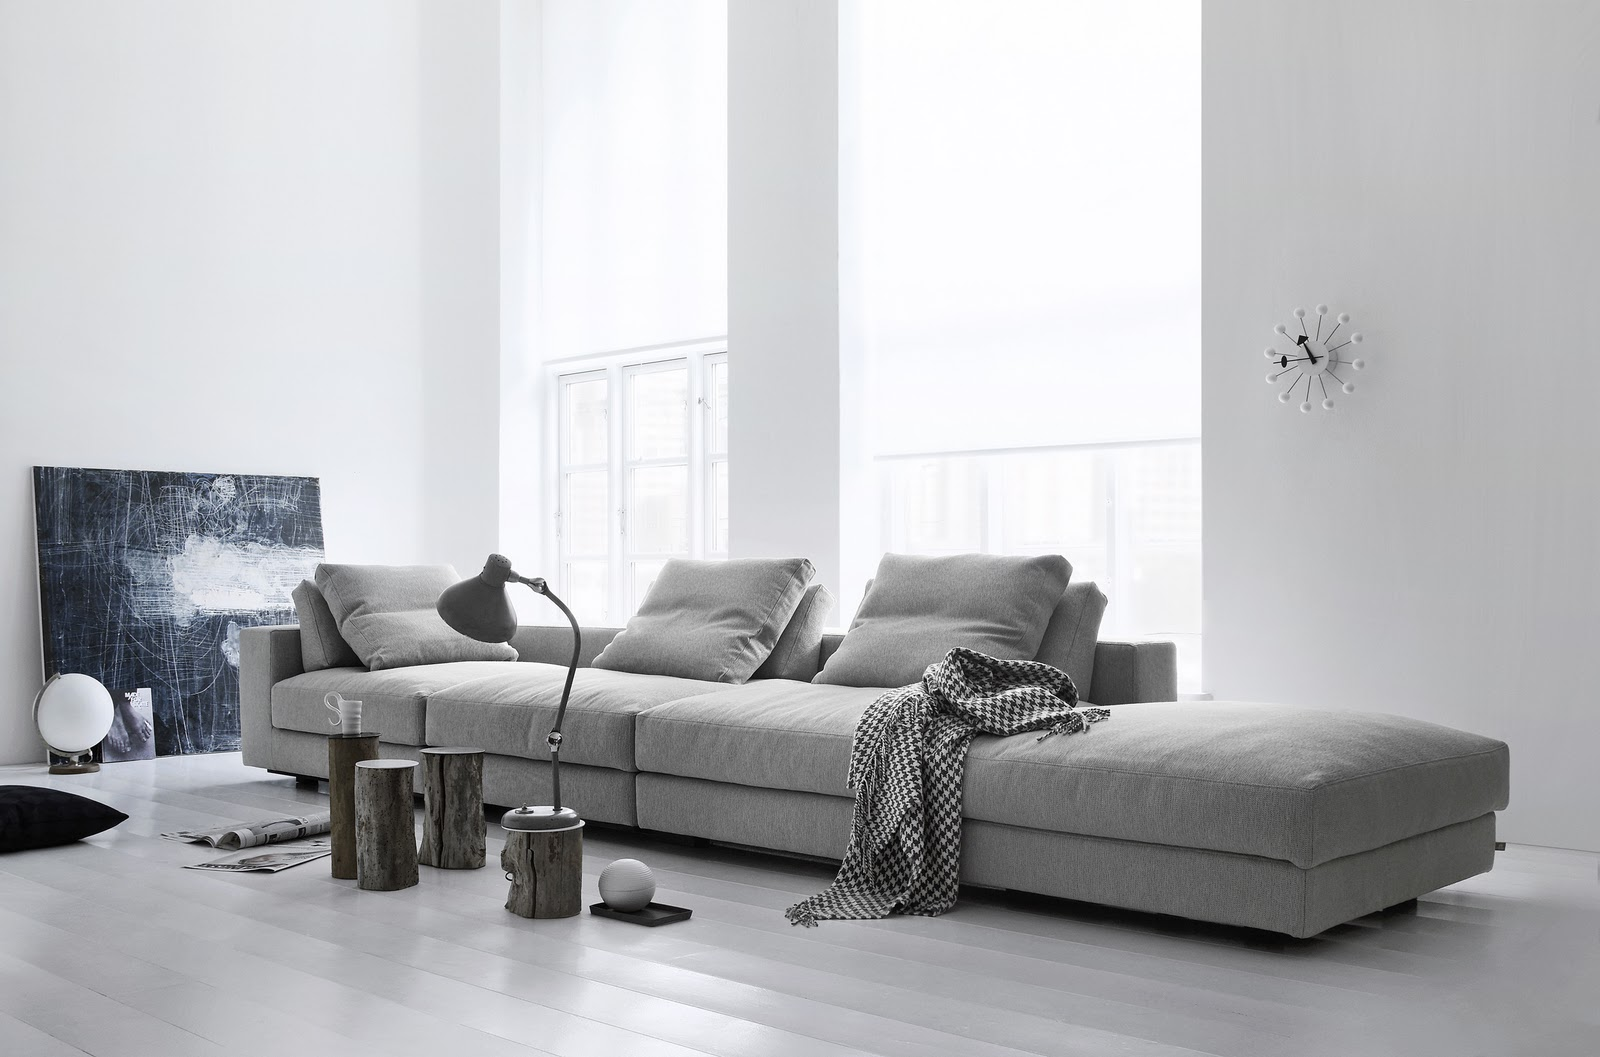 Eilersen Sofa Baseline M Chaiselong Gamma Arredamenti Leather Lifeisbeautiful I Want An Right Now